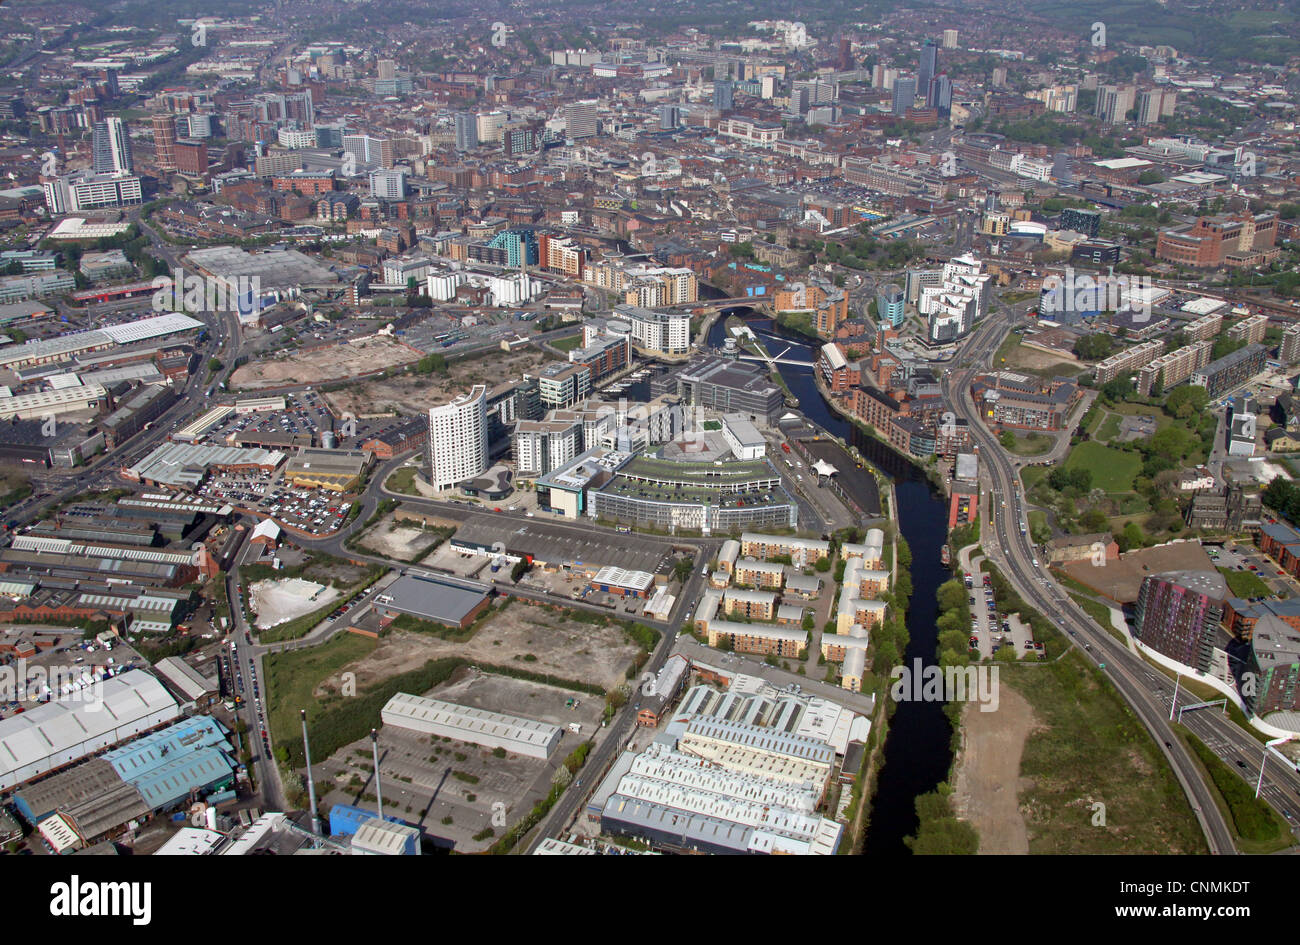 Aerial view of Clarence Dock area of Leeds - Stock Image